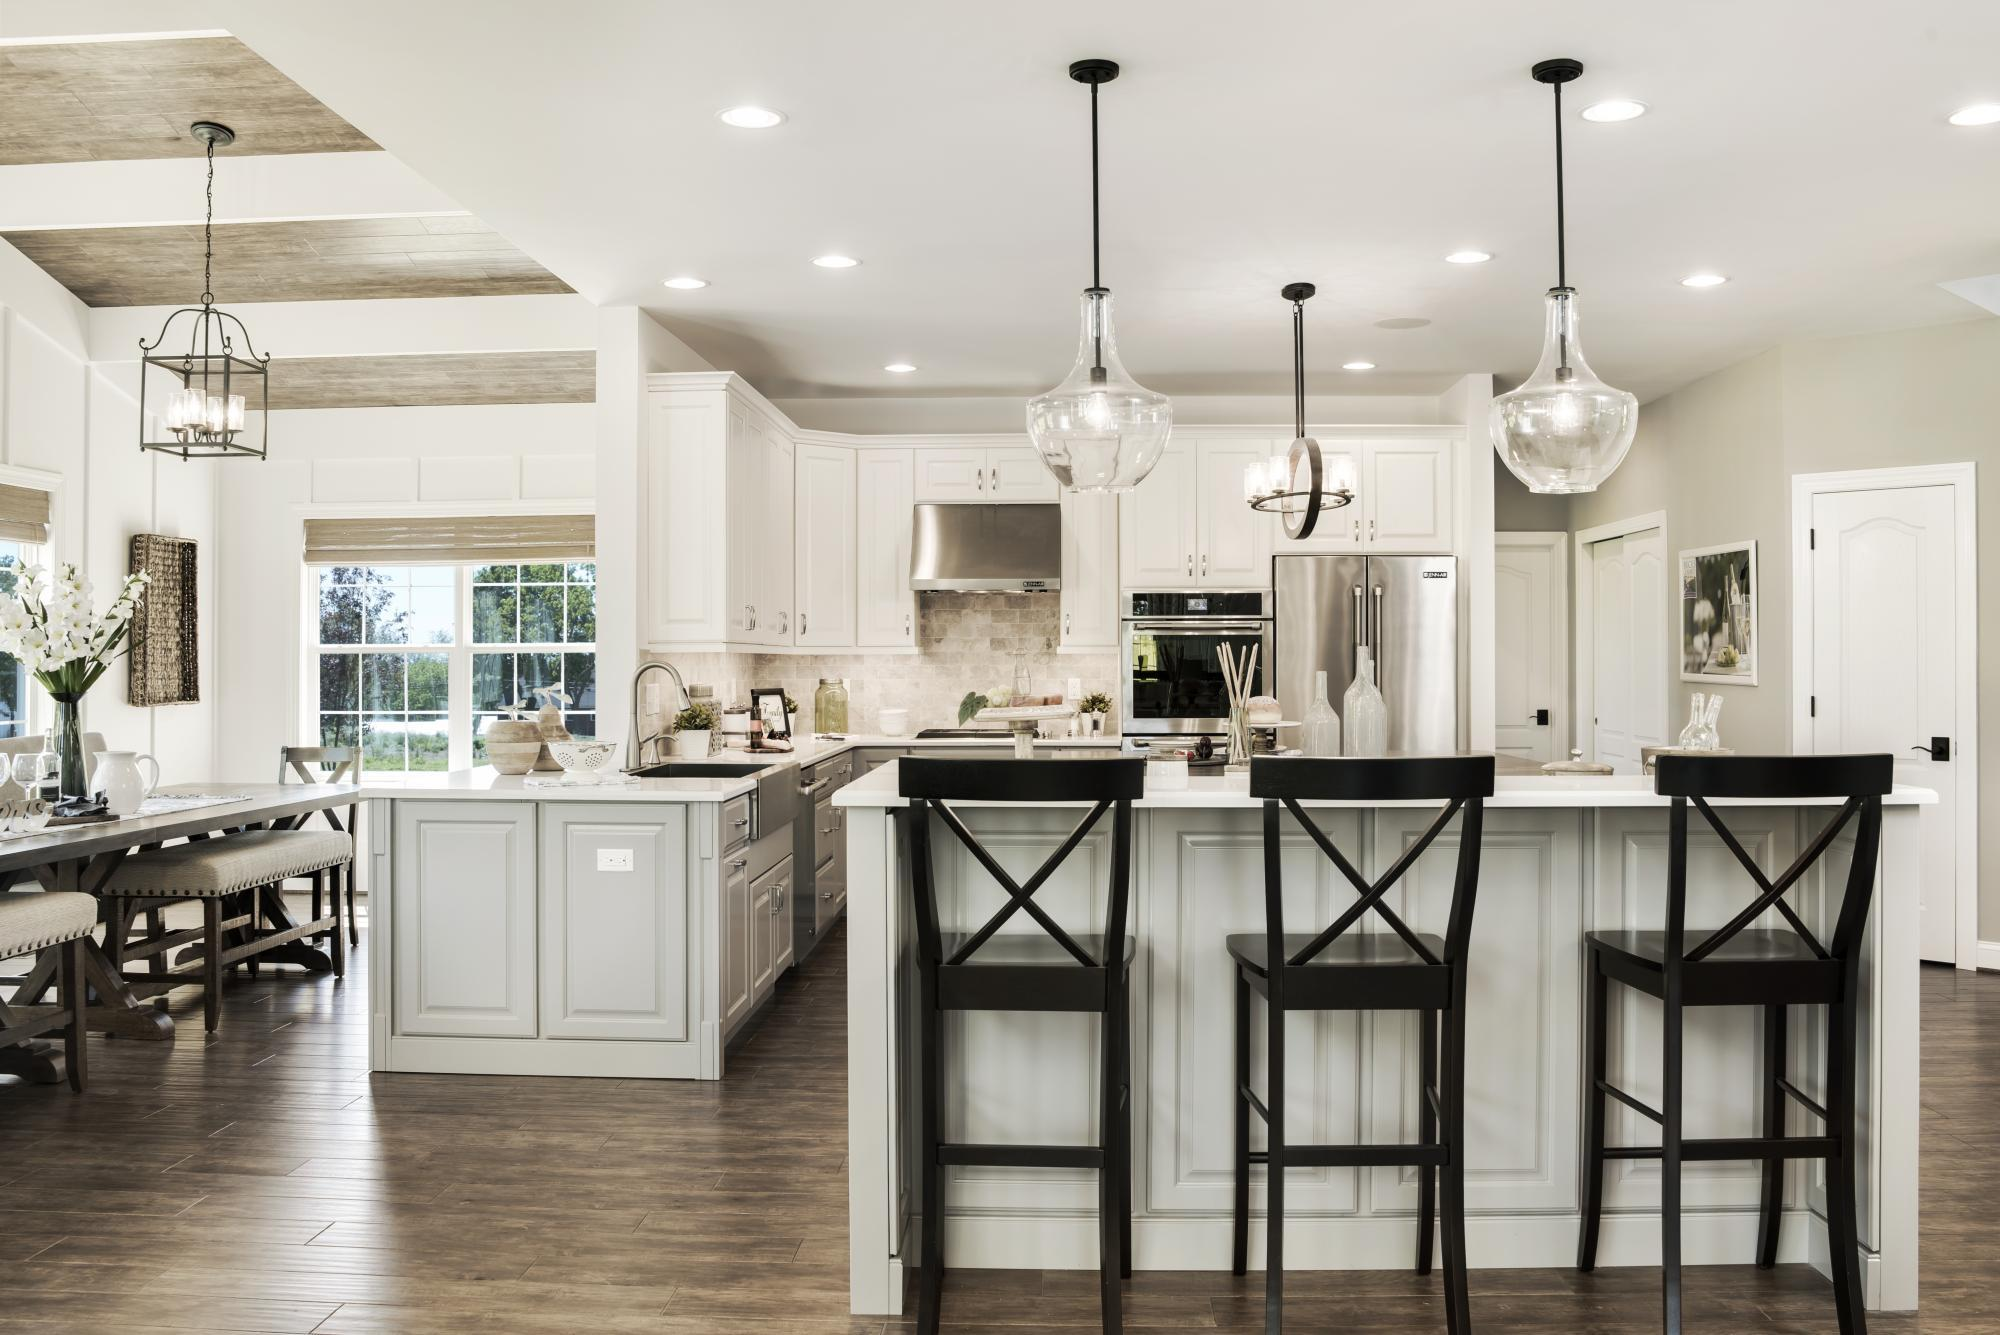 Kitchen featured in The Monroe By Hallmark Homes Group in Philadelphia, PA